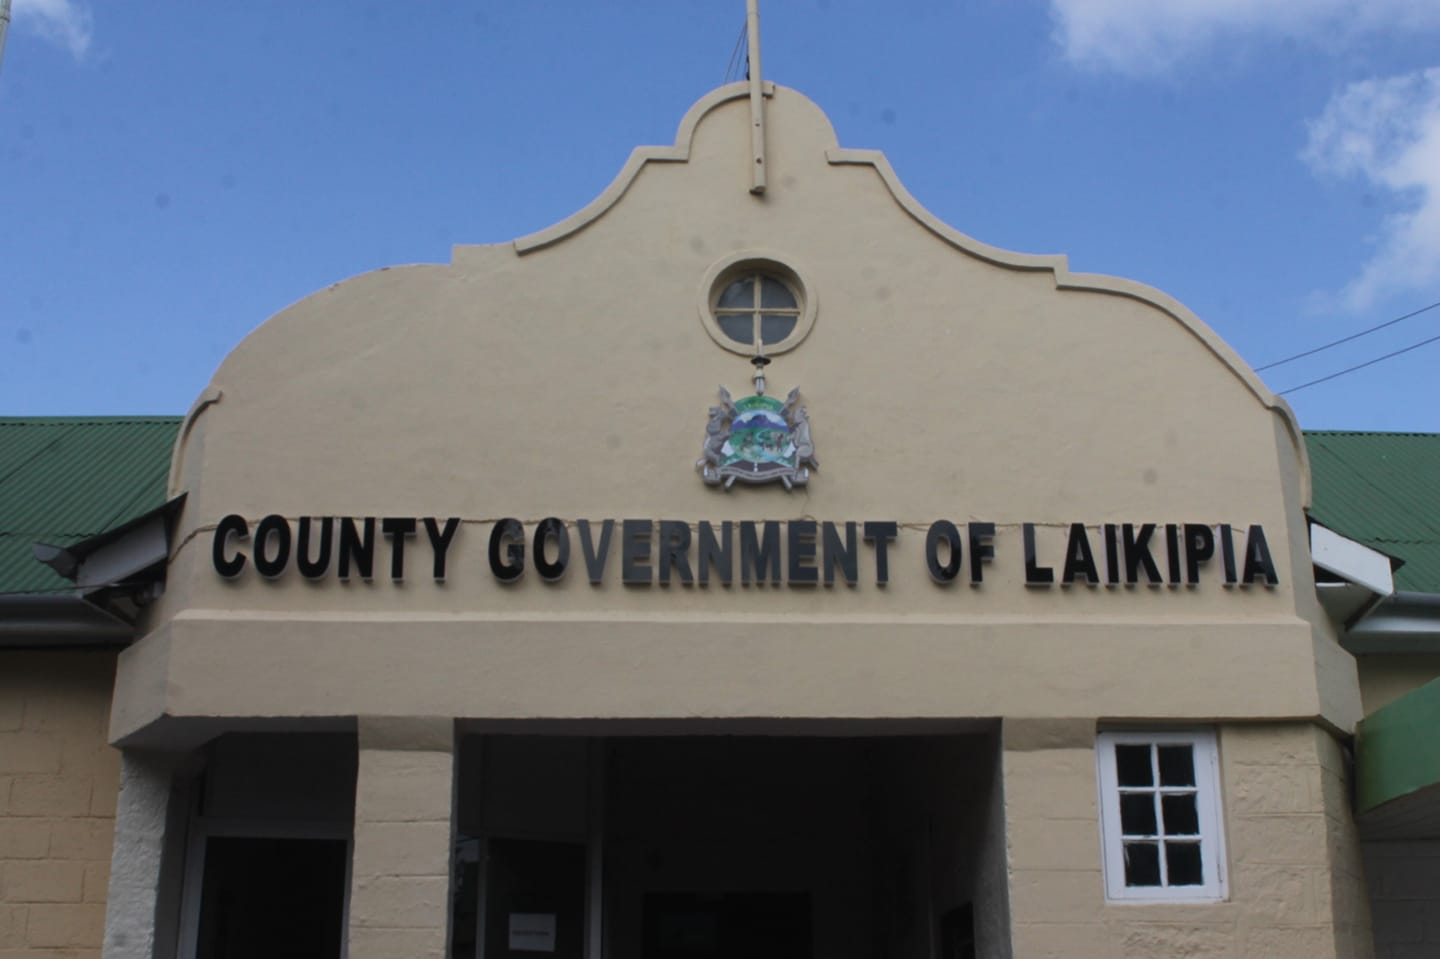 Laikipia County and Co-op Bank in a joint venture to fund over 7000 entrepreneurs through the Laikipia Entreprise Fund